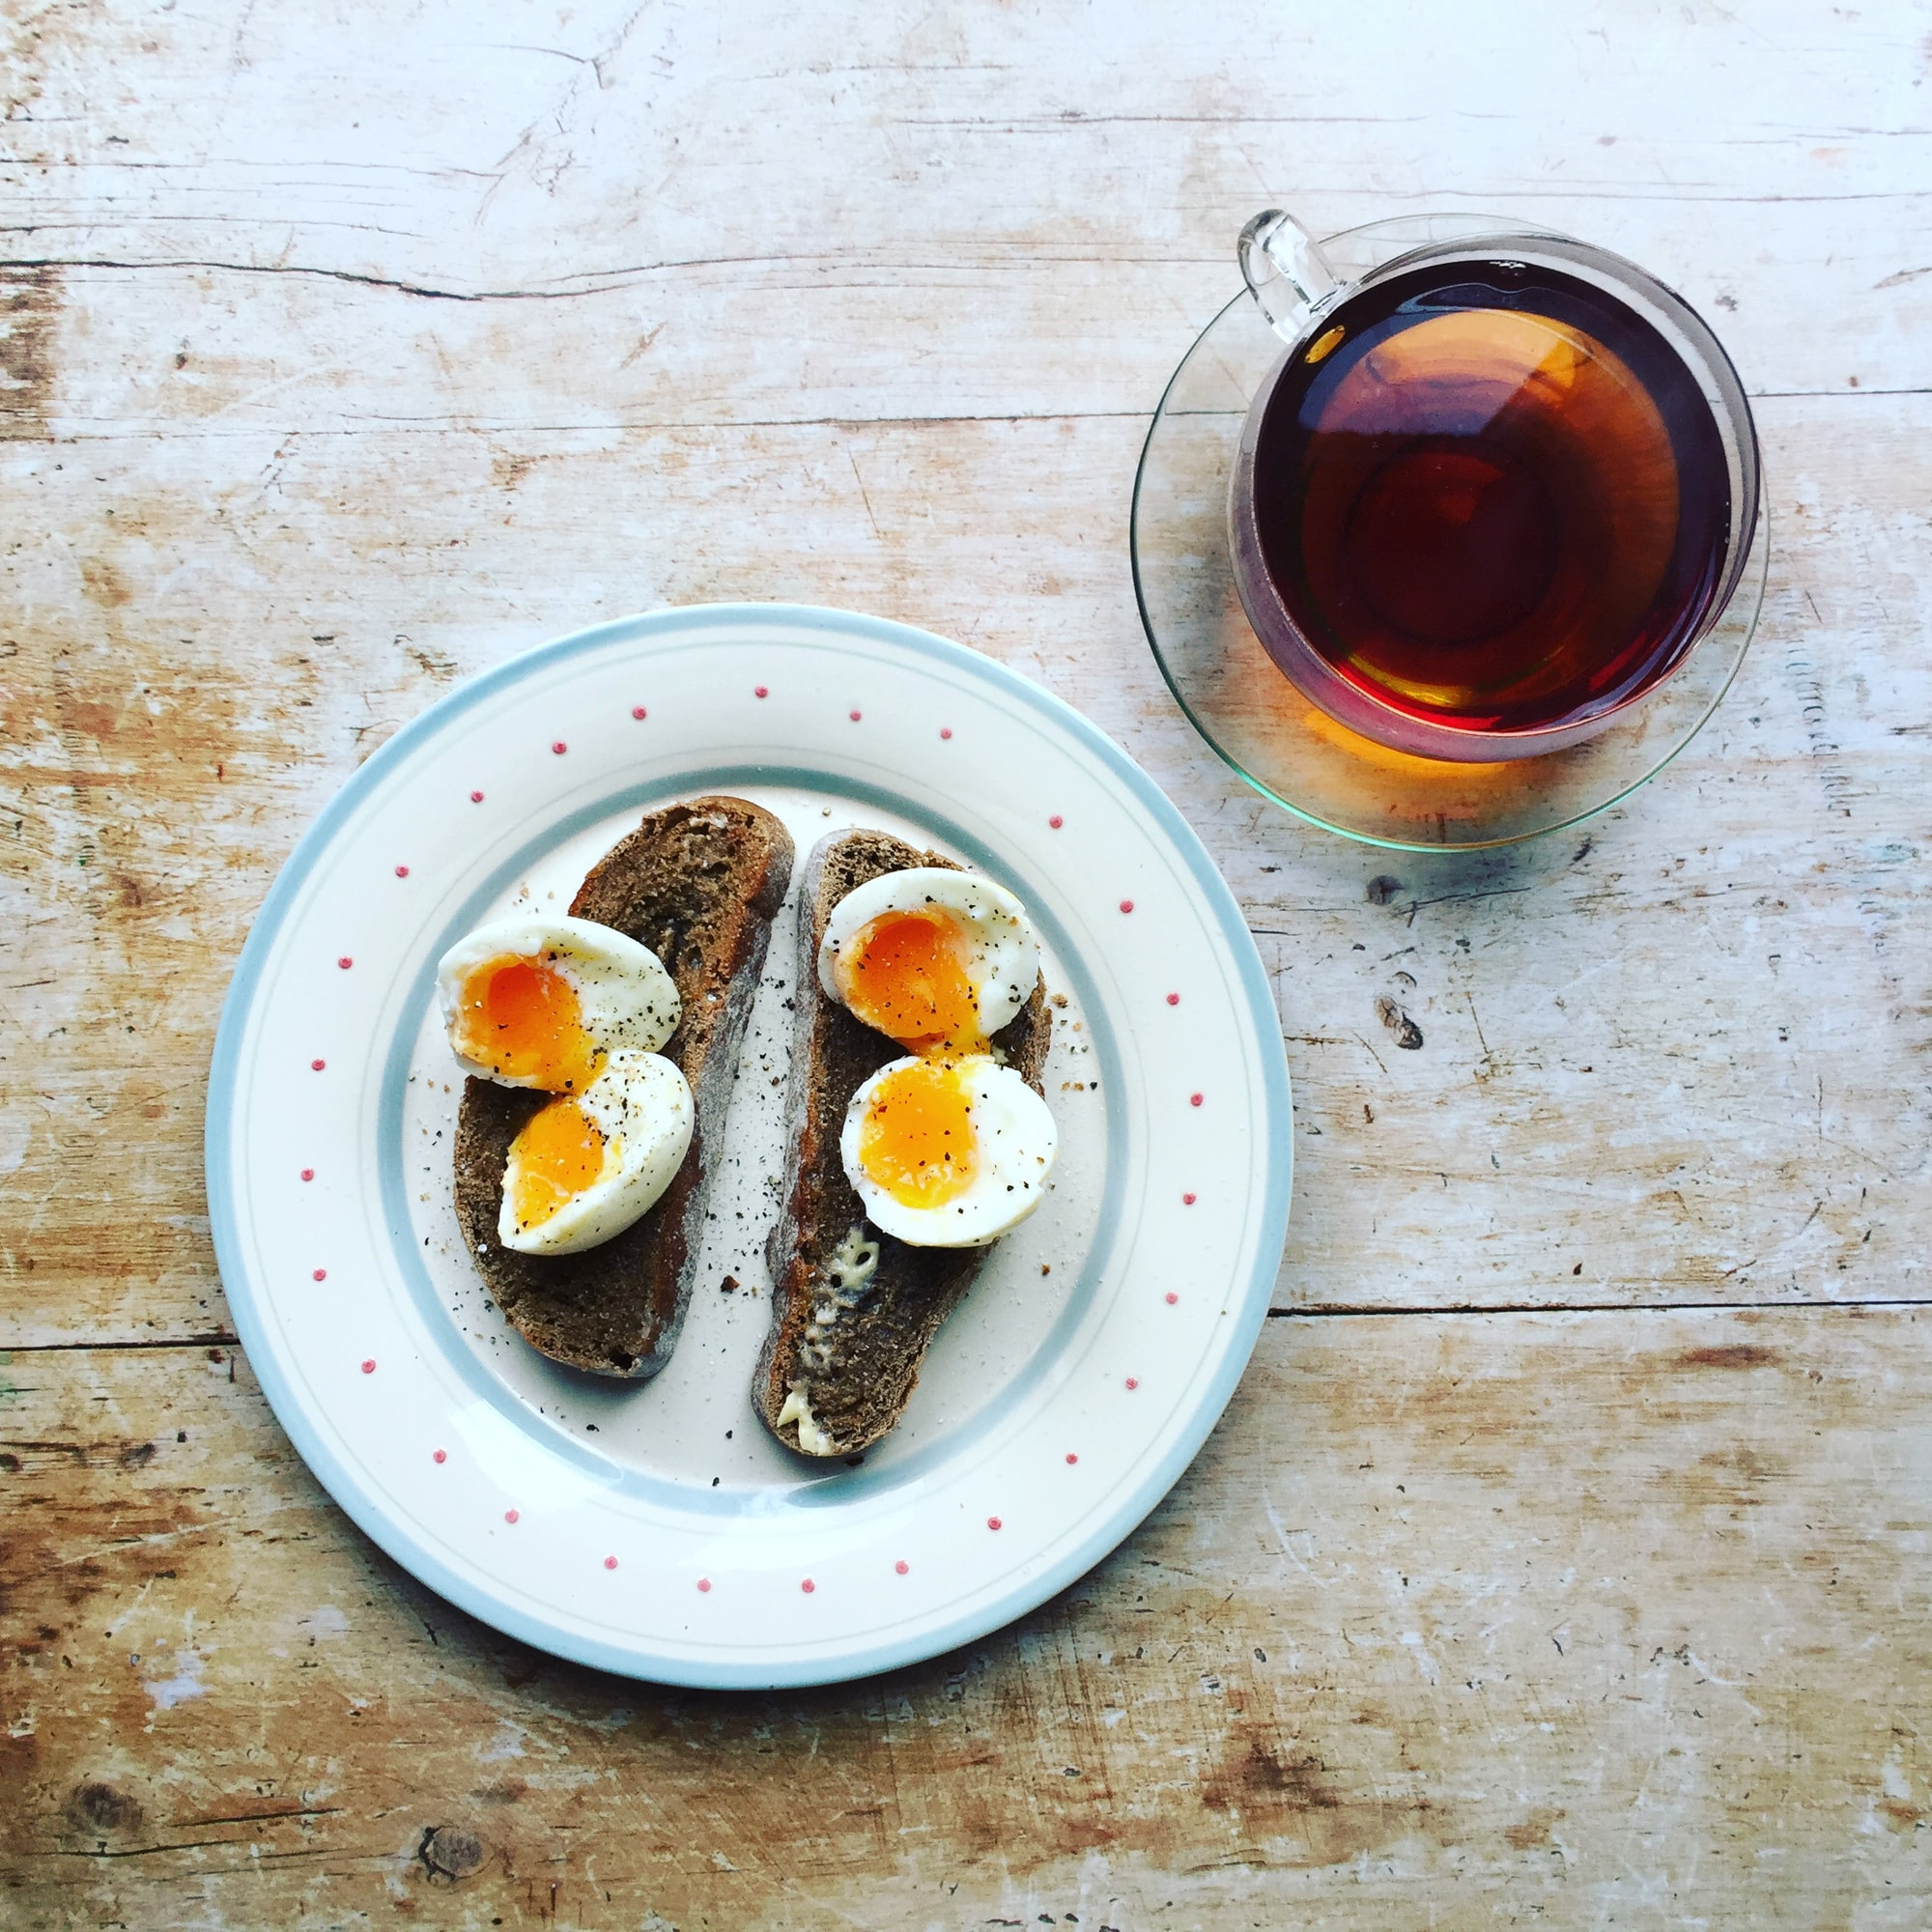 A rare quiet cooked lunch - my favourite - soft boiled eggs on rye toast with the most amazing candy apple black tea - a perfect autumn lunch.